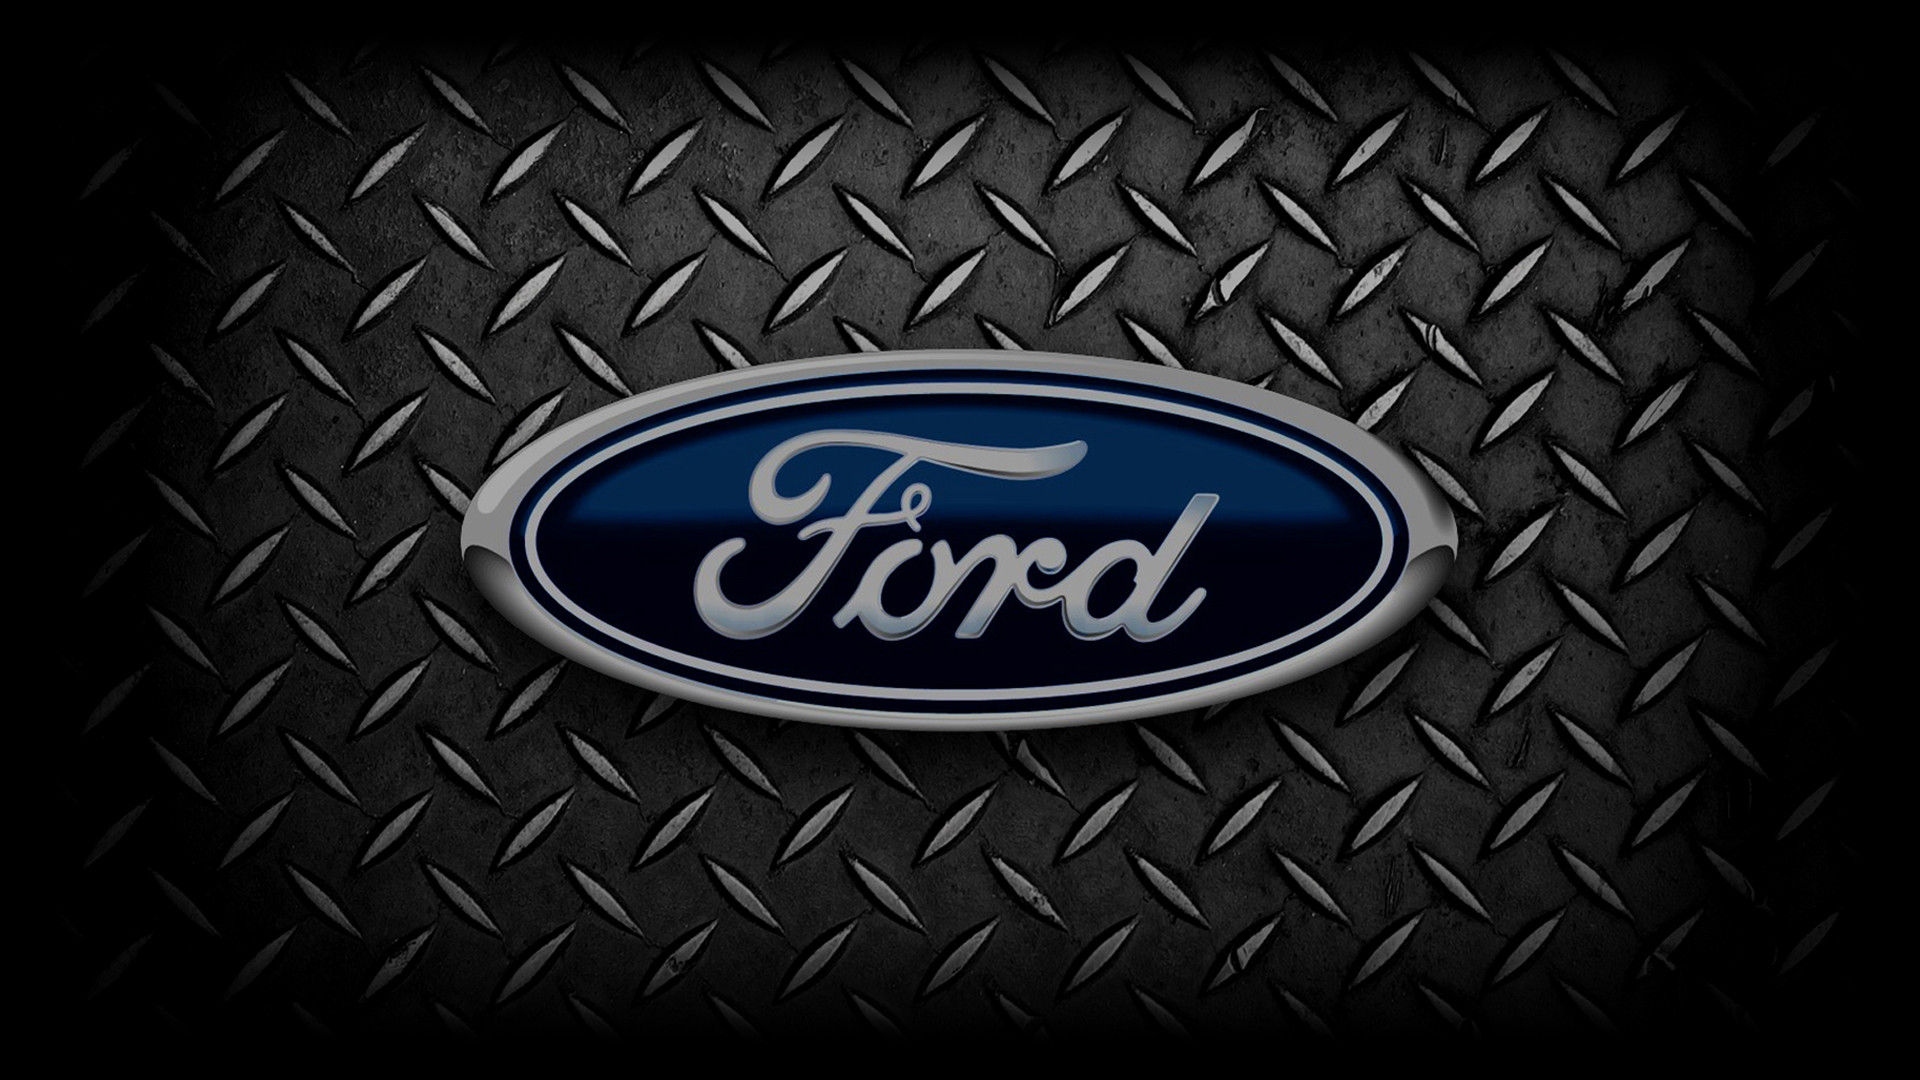 Ford Logo Wallpaper HD Backgrounds Wallpaper with Resolution